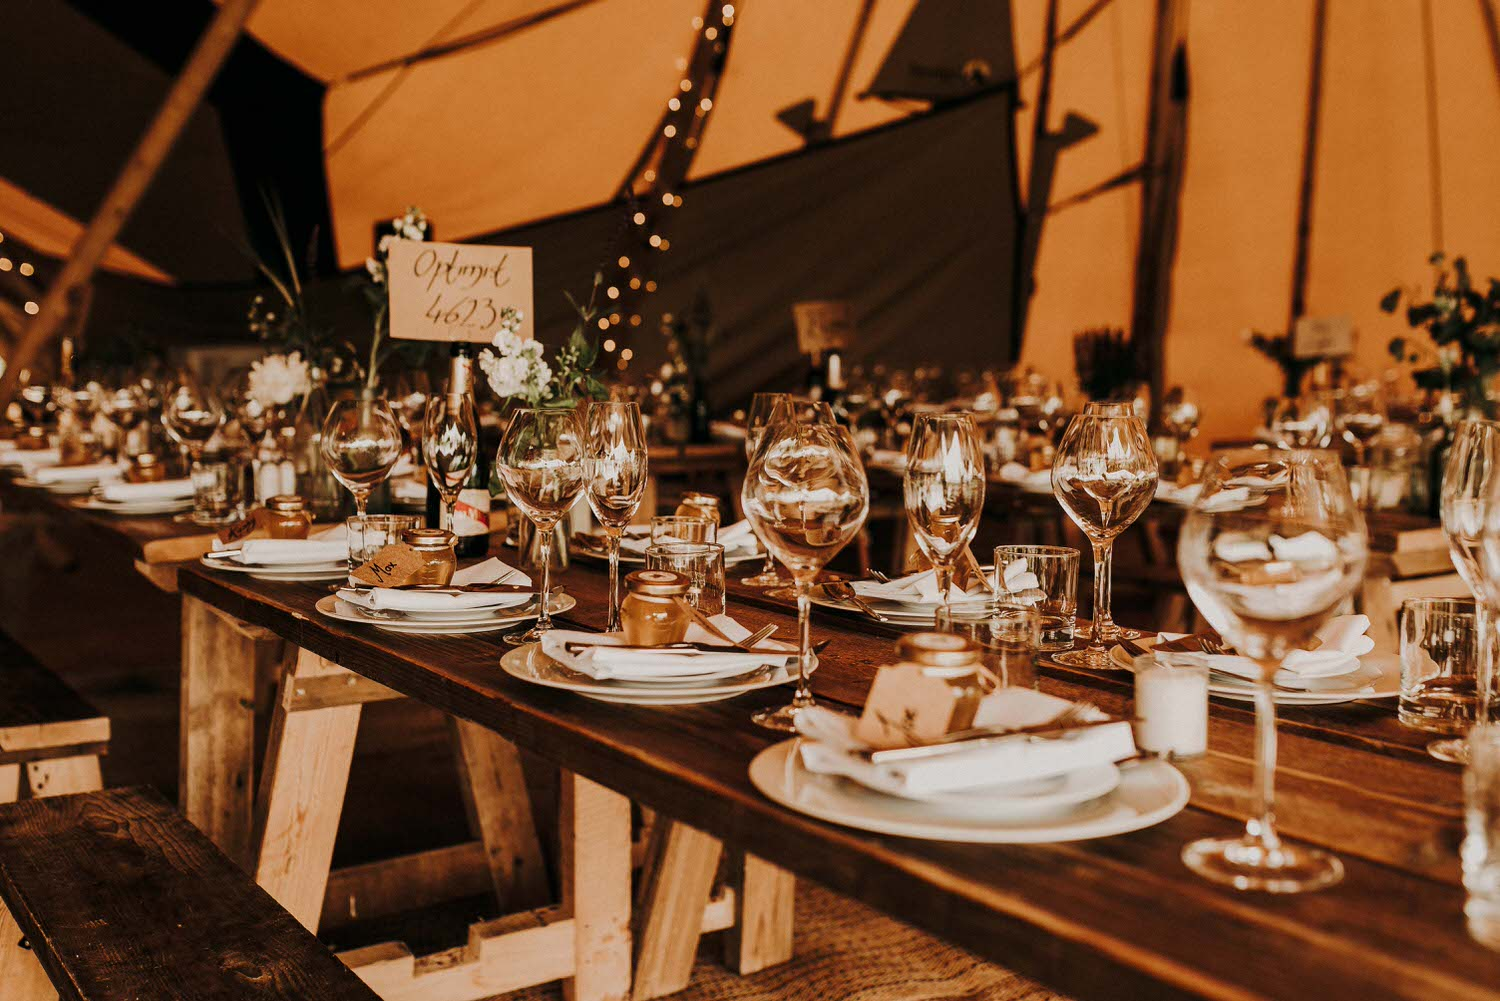 Image containing wedding photography of an Essex tipi wedding at The Barns at Lodge Farm in Nazeing, Essex.